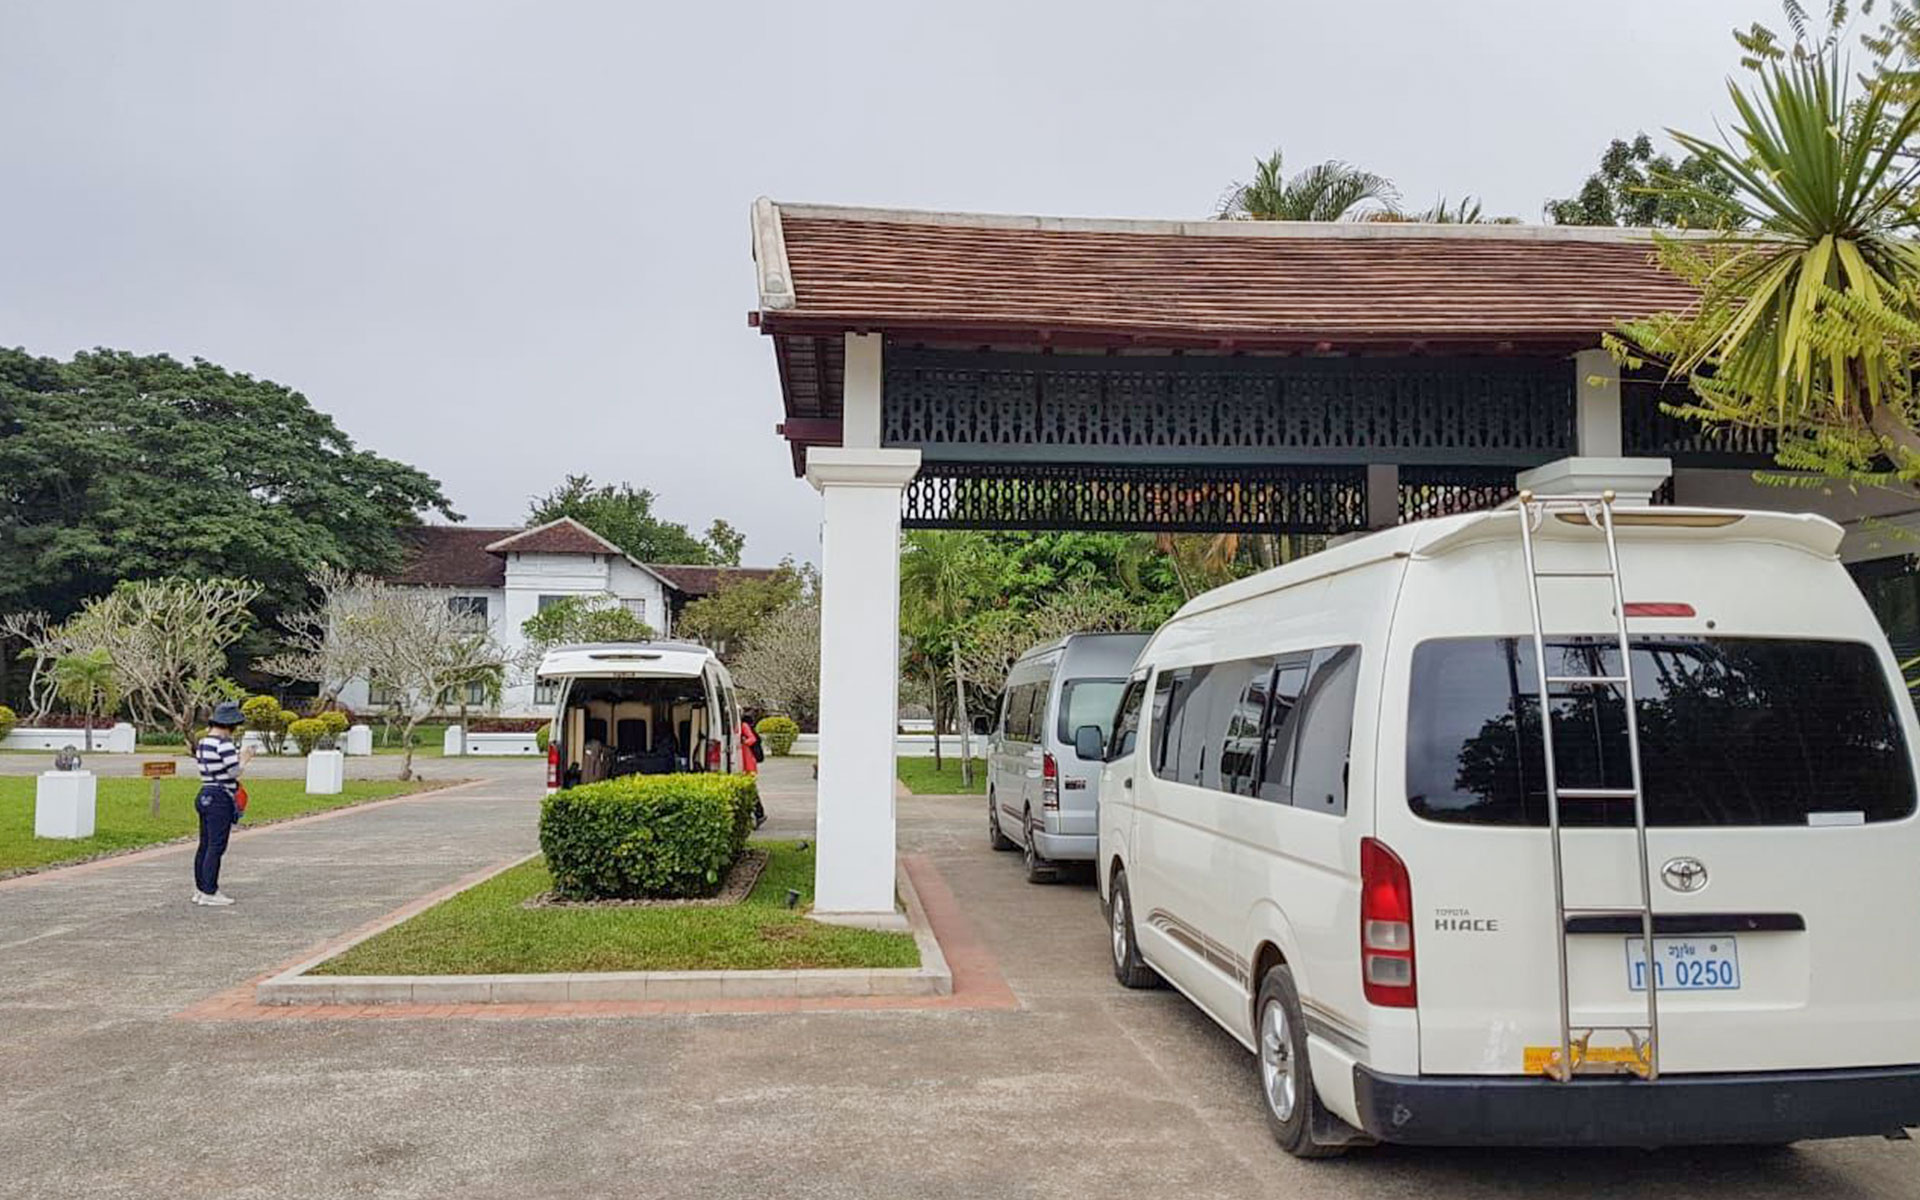 Minivans are also one good option for traveling from Luang Prabang to Vang Vieng